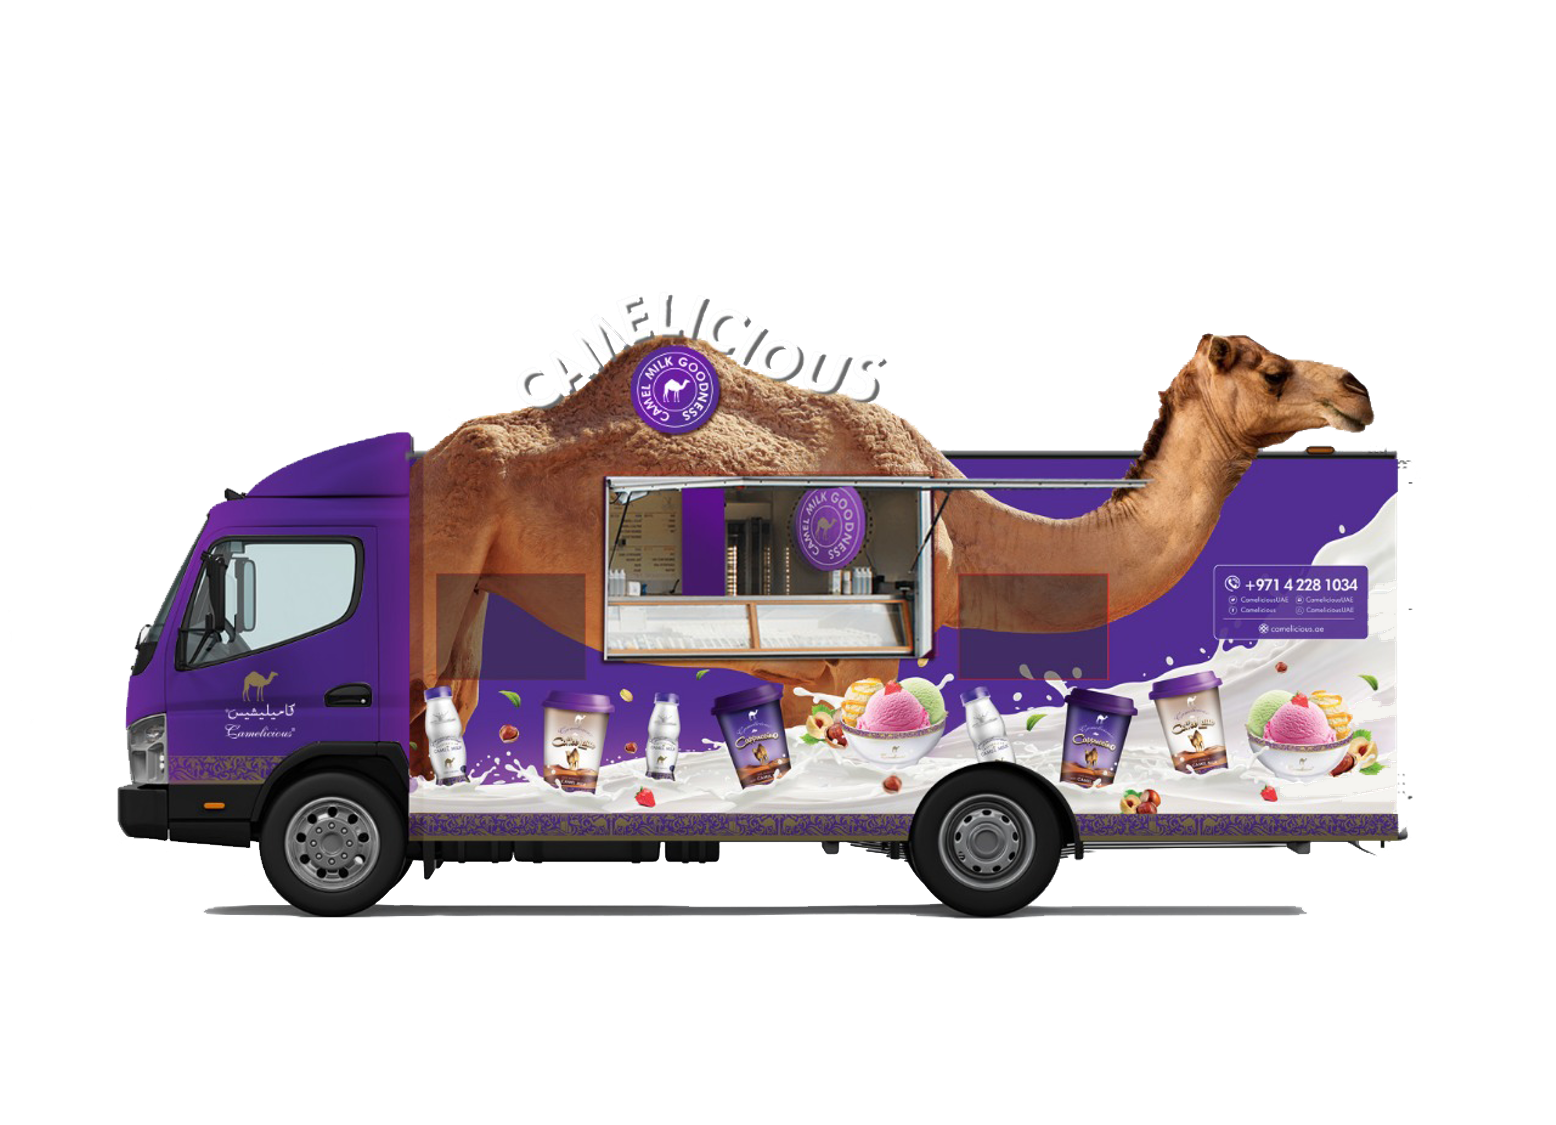 Camelicious Food Truck